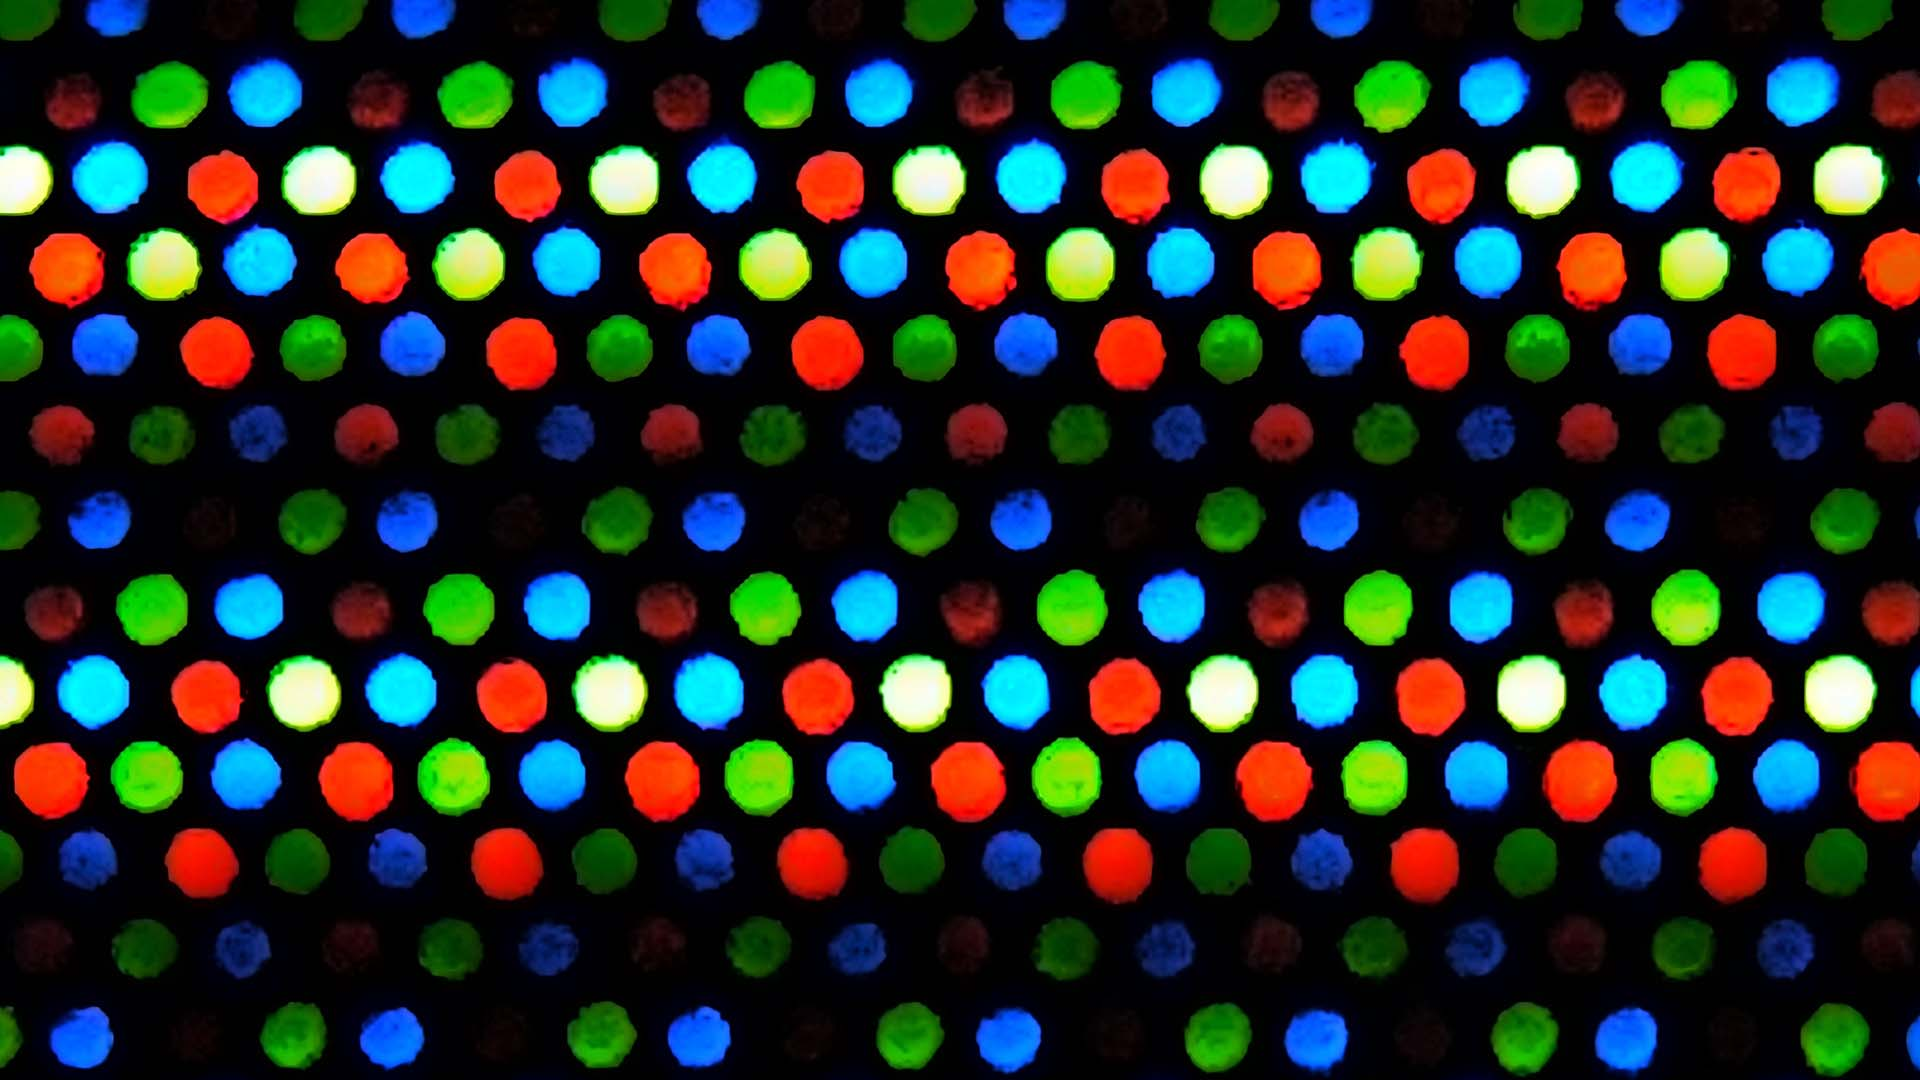 A macro view of an LED display. Image: